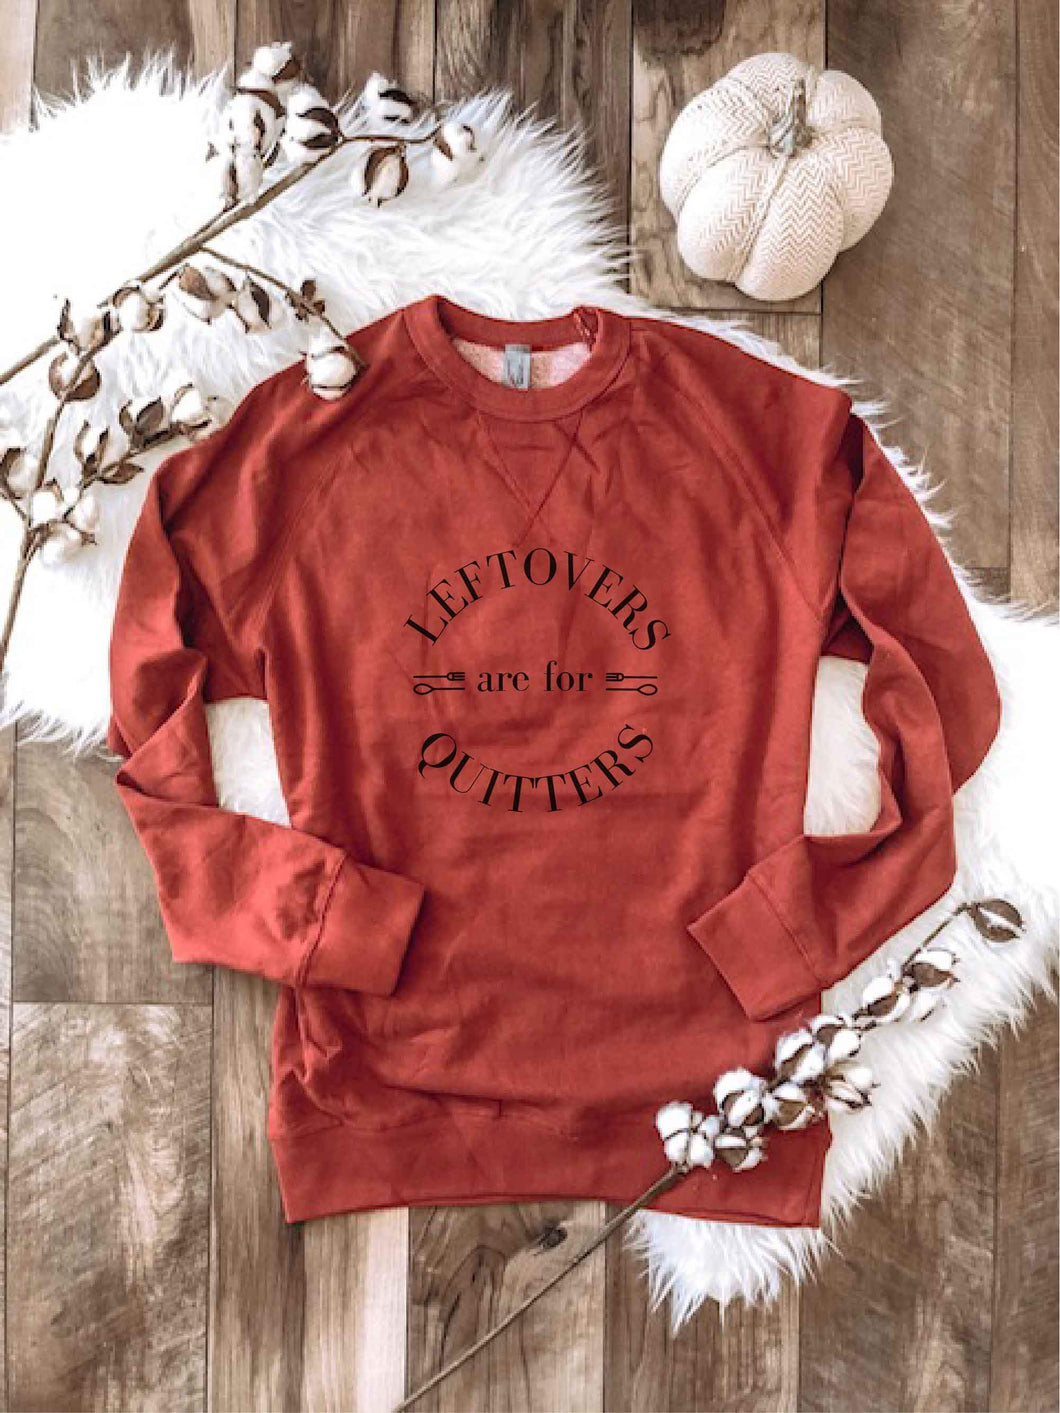 Leftovers are for quitters french terry raglan Fall Sweatshirt Cotton heritage unisex French Terry- rust